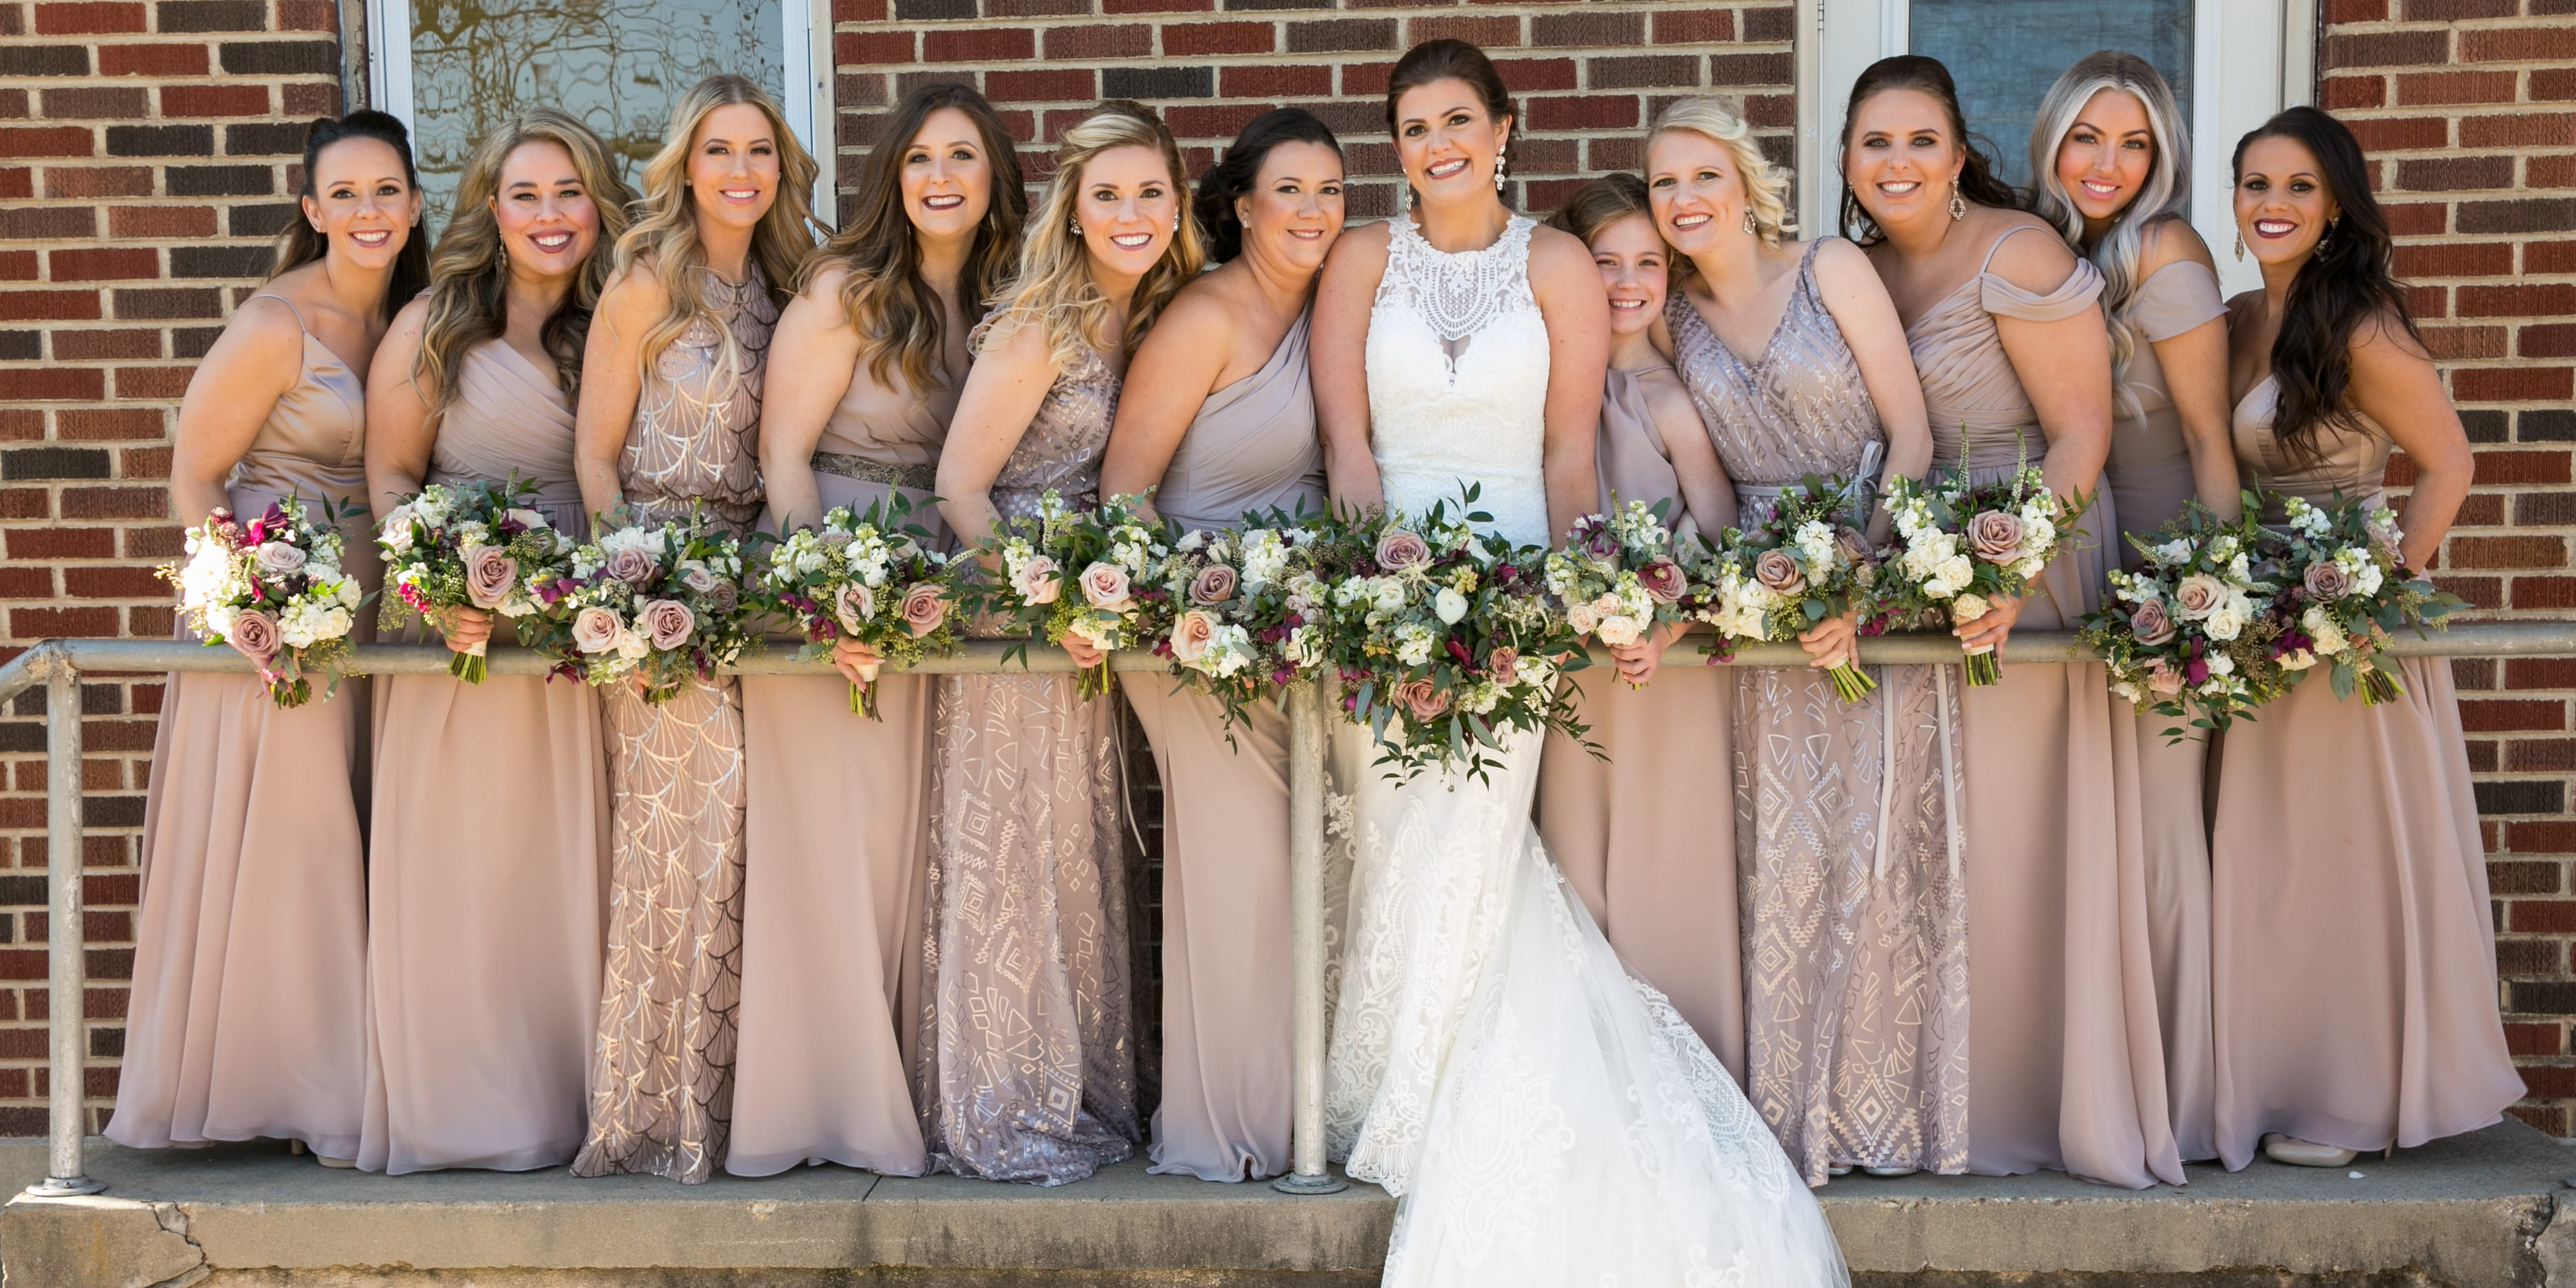 Bridal Shop In Waco, TX | JoAnn's Bridal